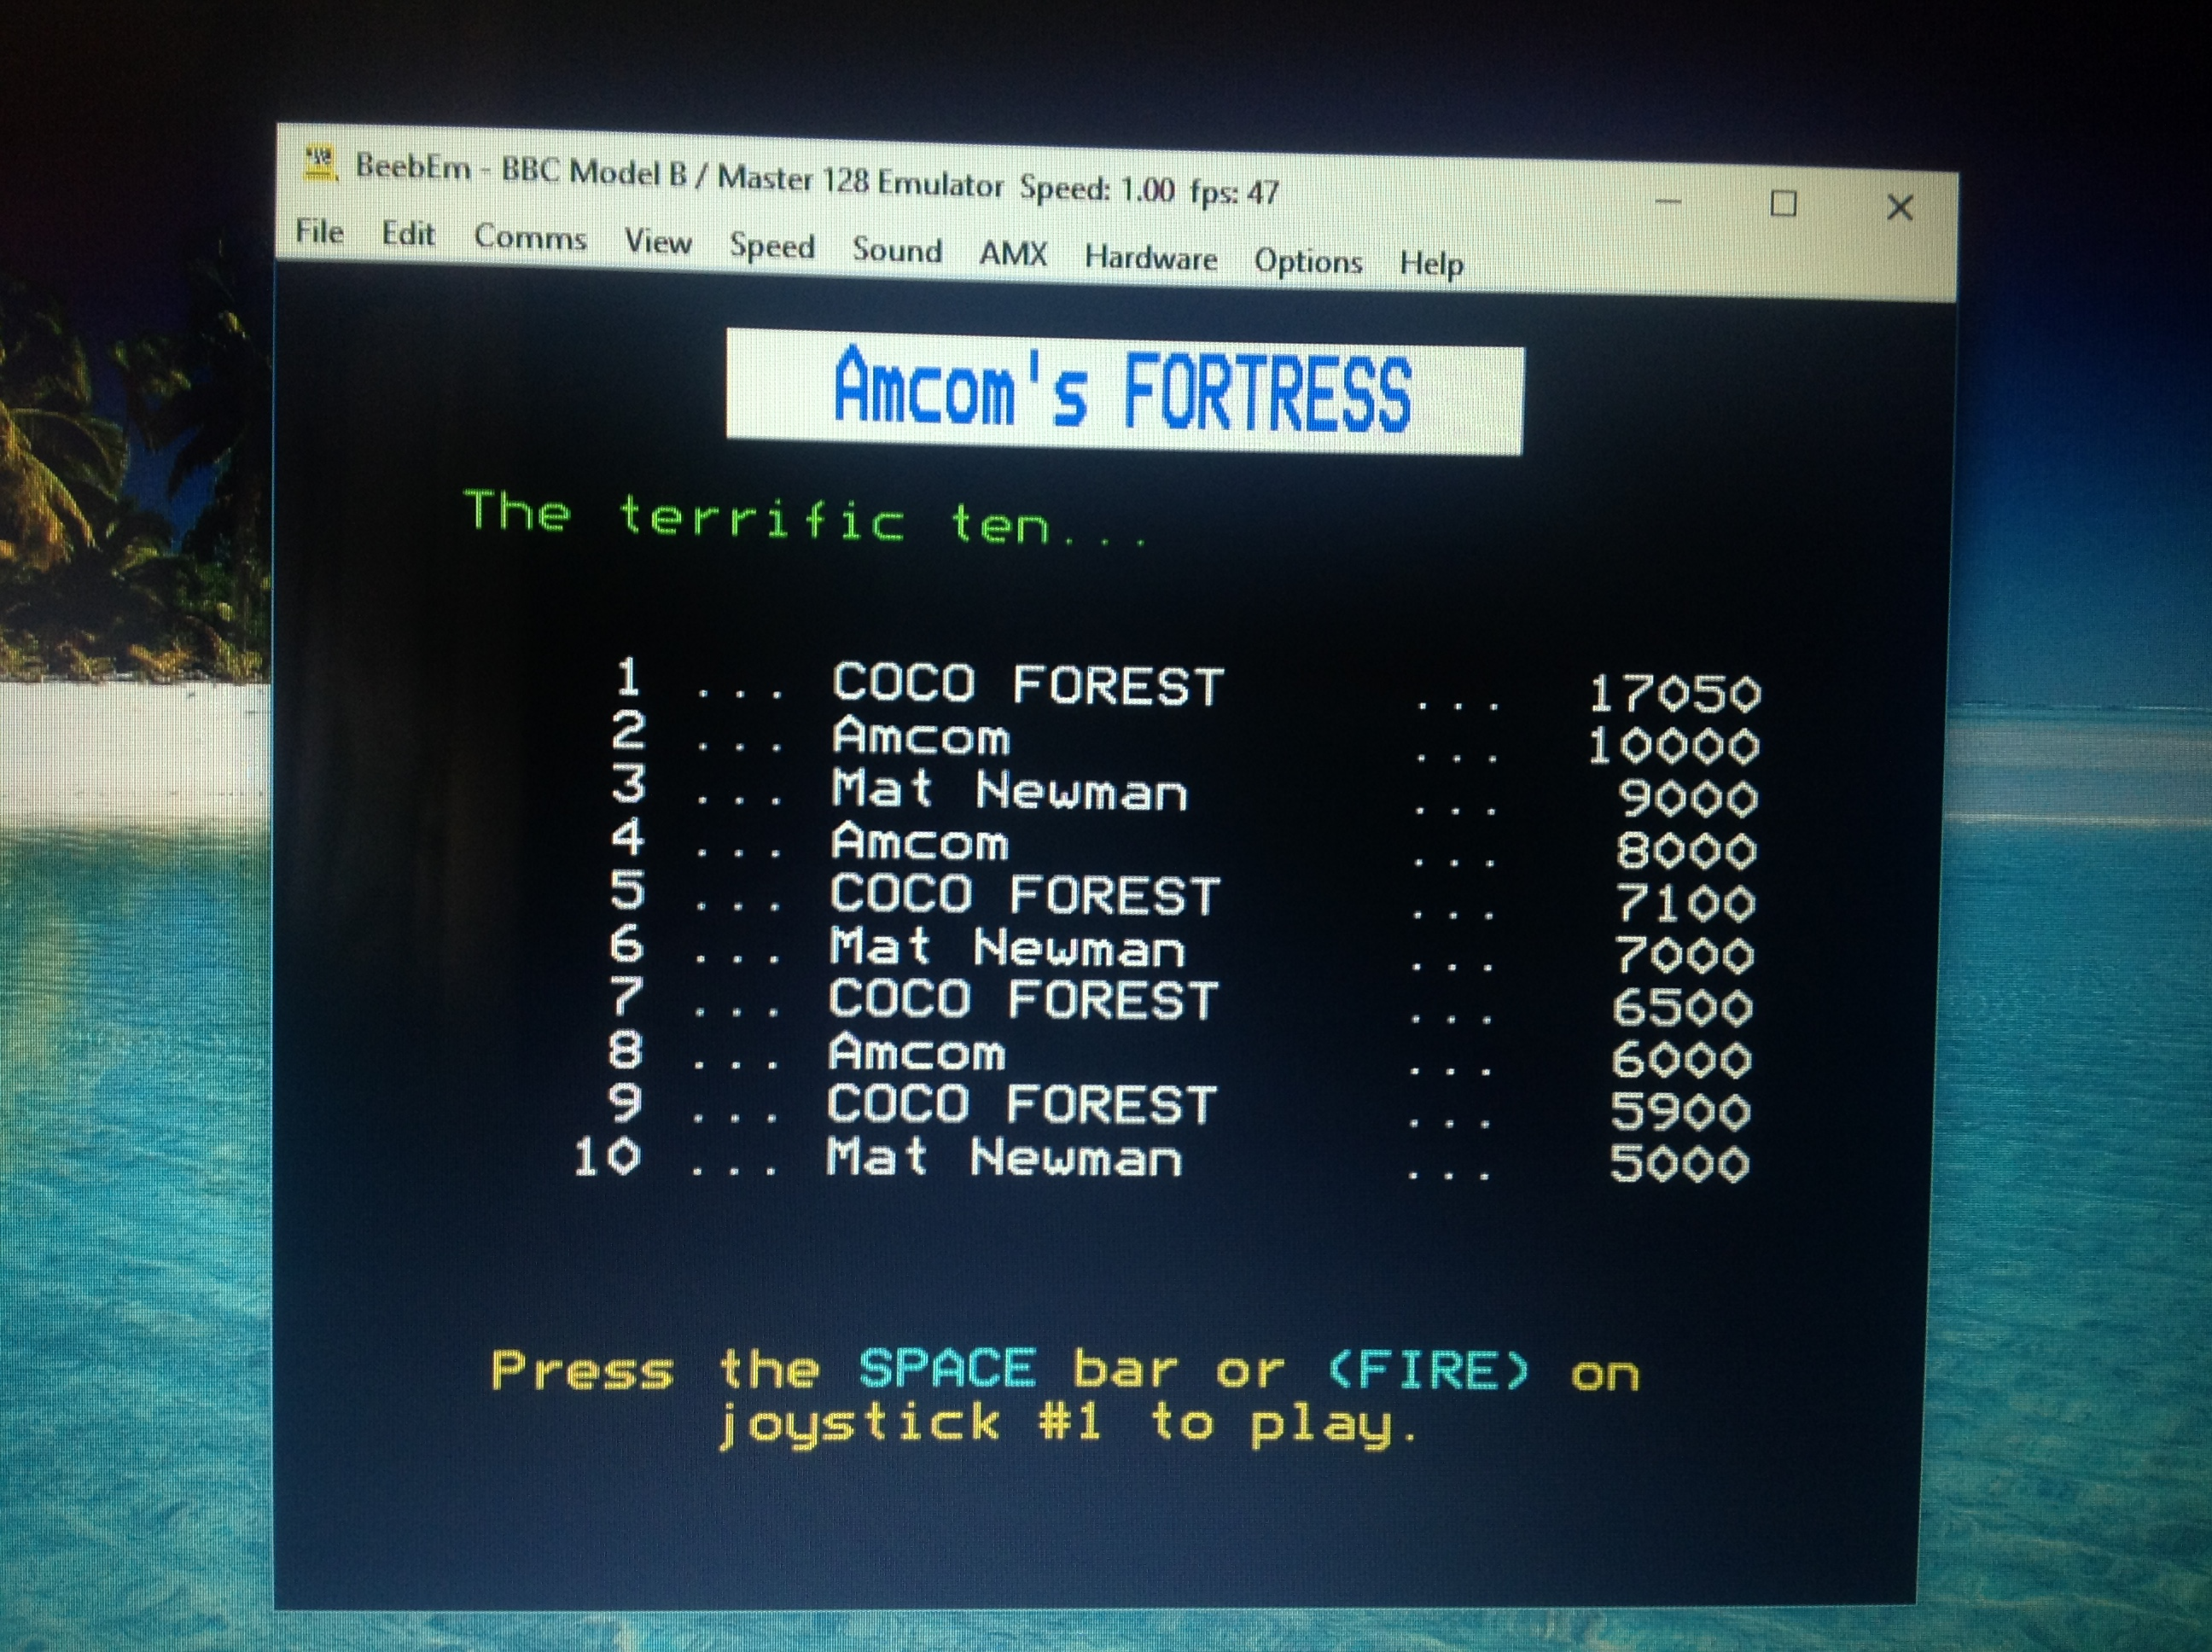 CoCoForest: Fortress (BBC Micro Emulated) 17,050 points on 2017-08-04 14:25:54